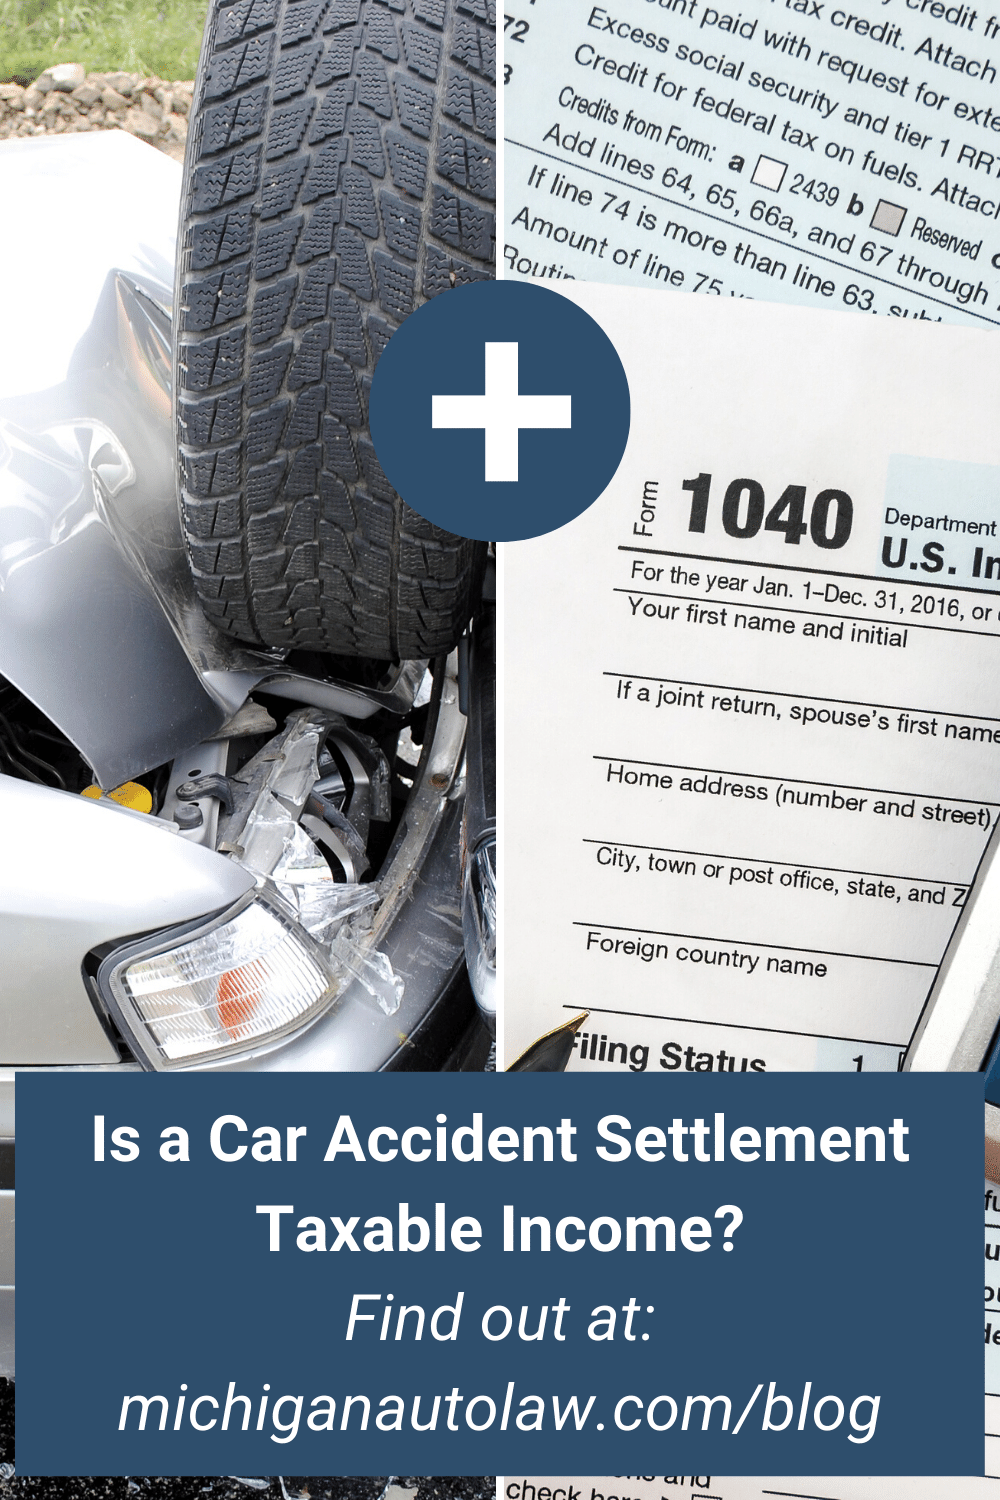 Is a Car Accident Settlement Taxable Income?